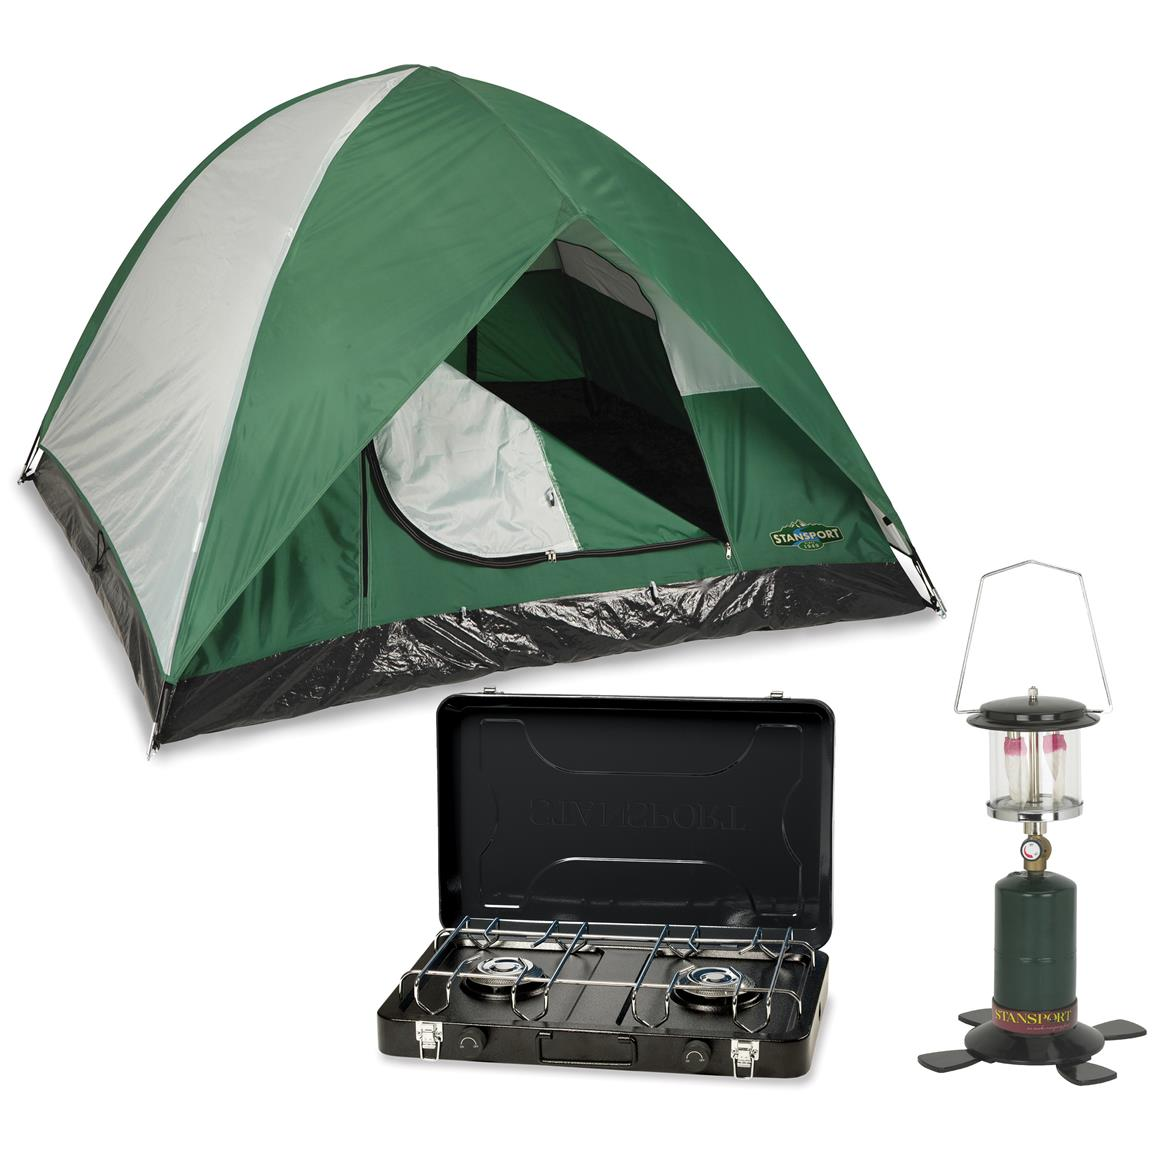 Stansport Ultimate Camping Package with Lantern, Stove and Tent